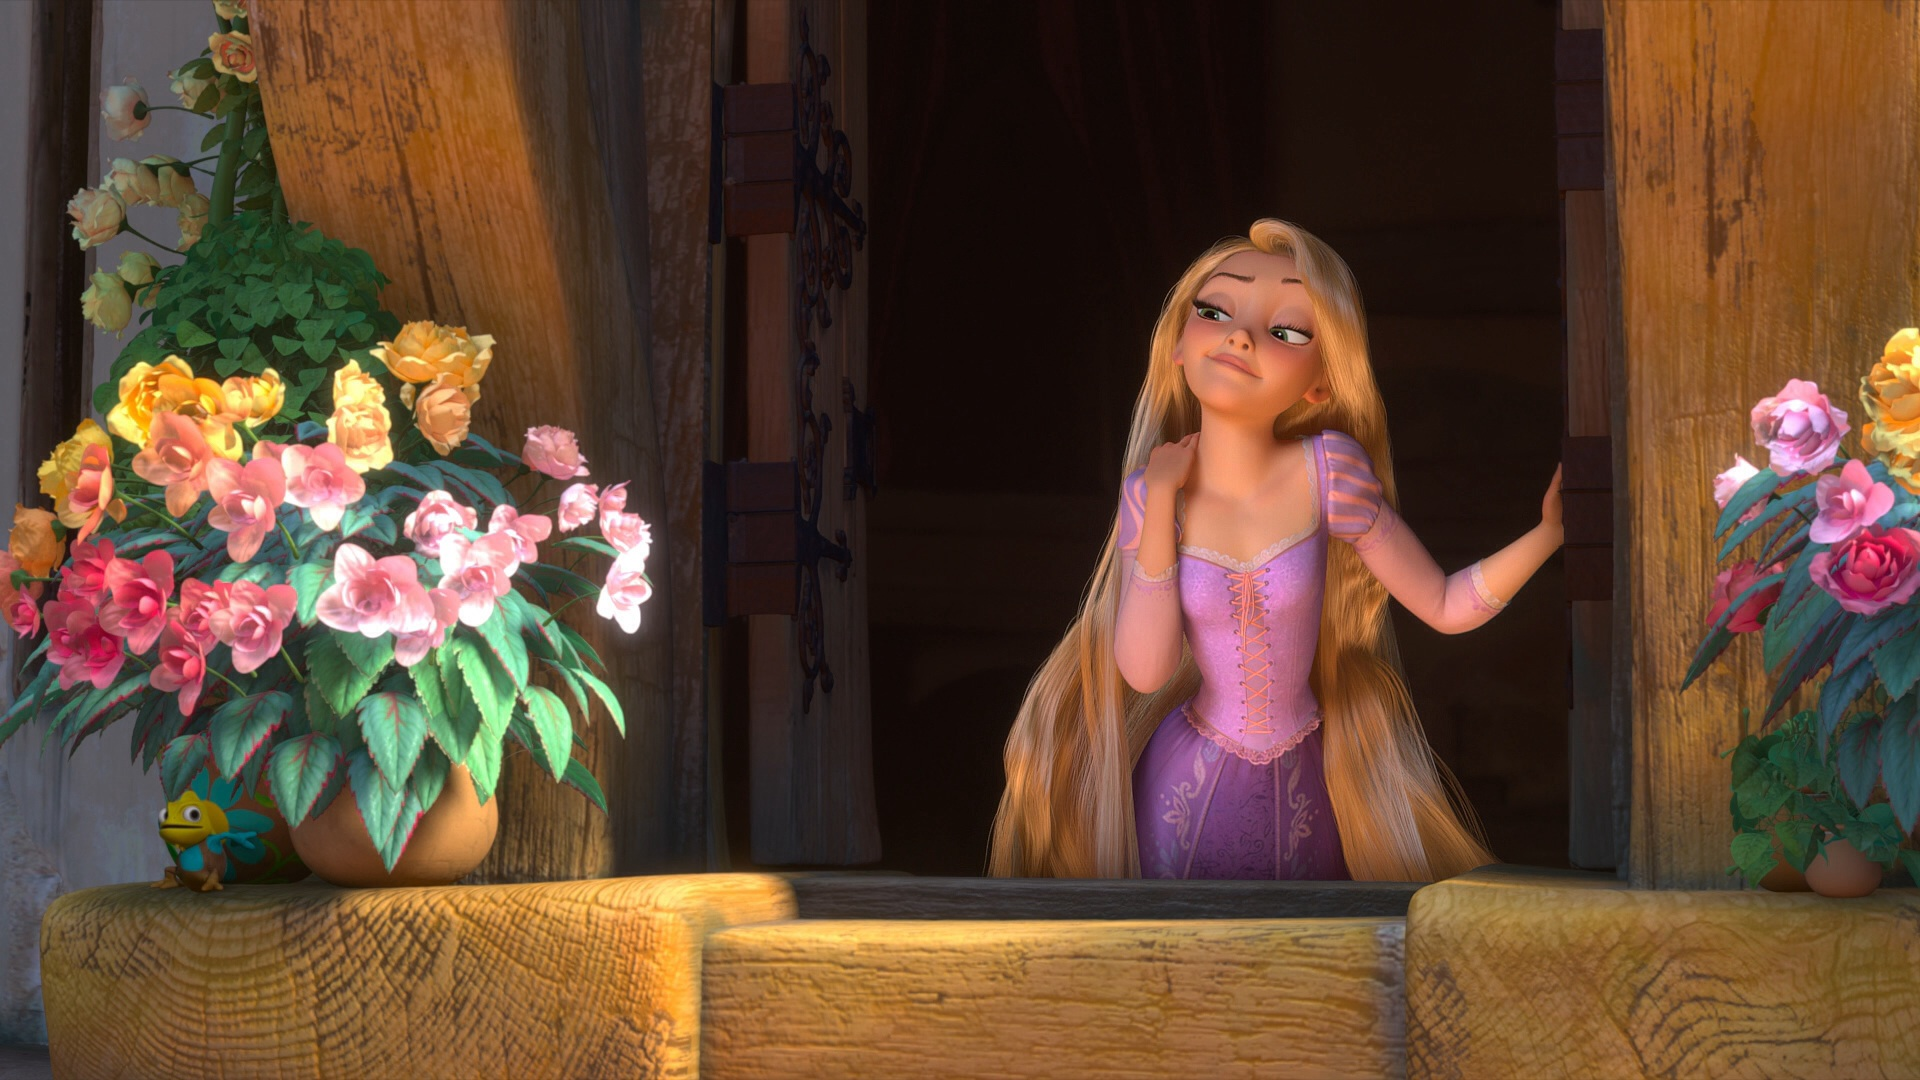 Tangled Images Tangled Rapunzel Hd Wallpaper And Background Photos